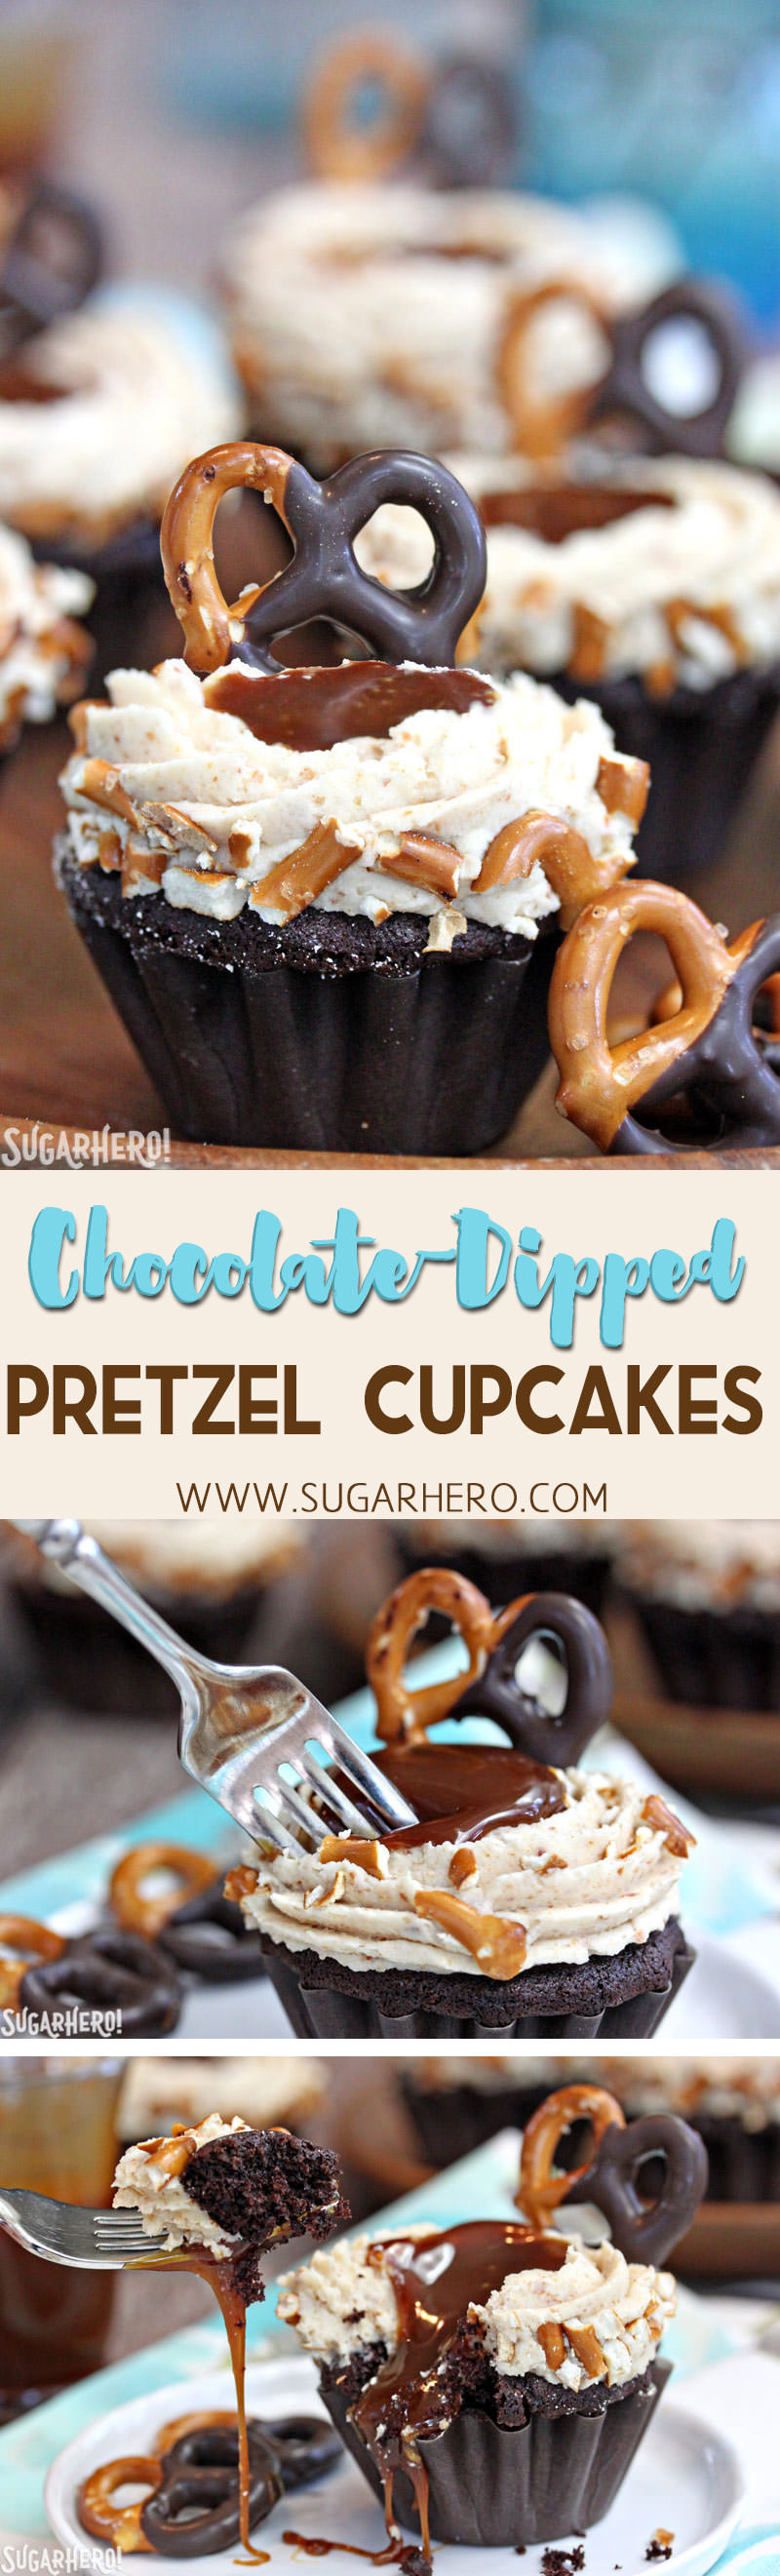 Chocolate-Dipped Pretzel Cupcakes with Pretzel Frosting and Salted Caramel | From SugarHero.com